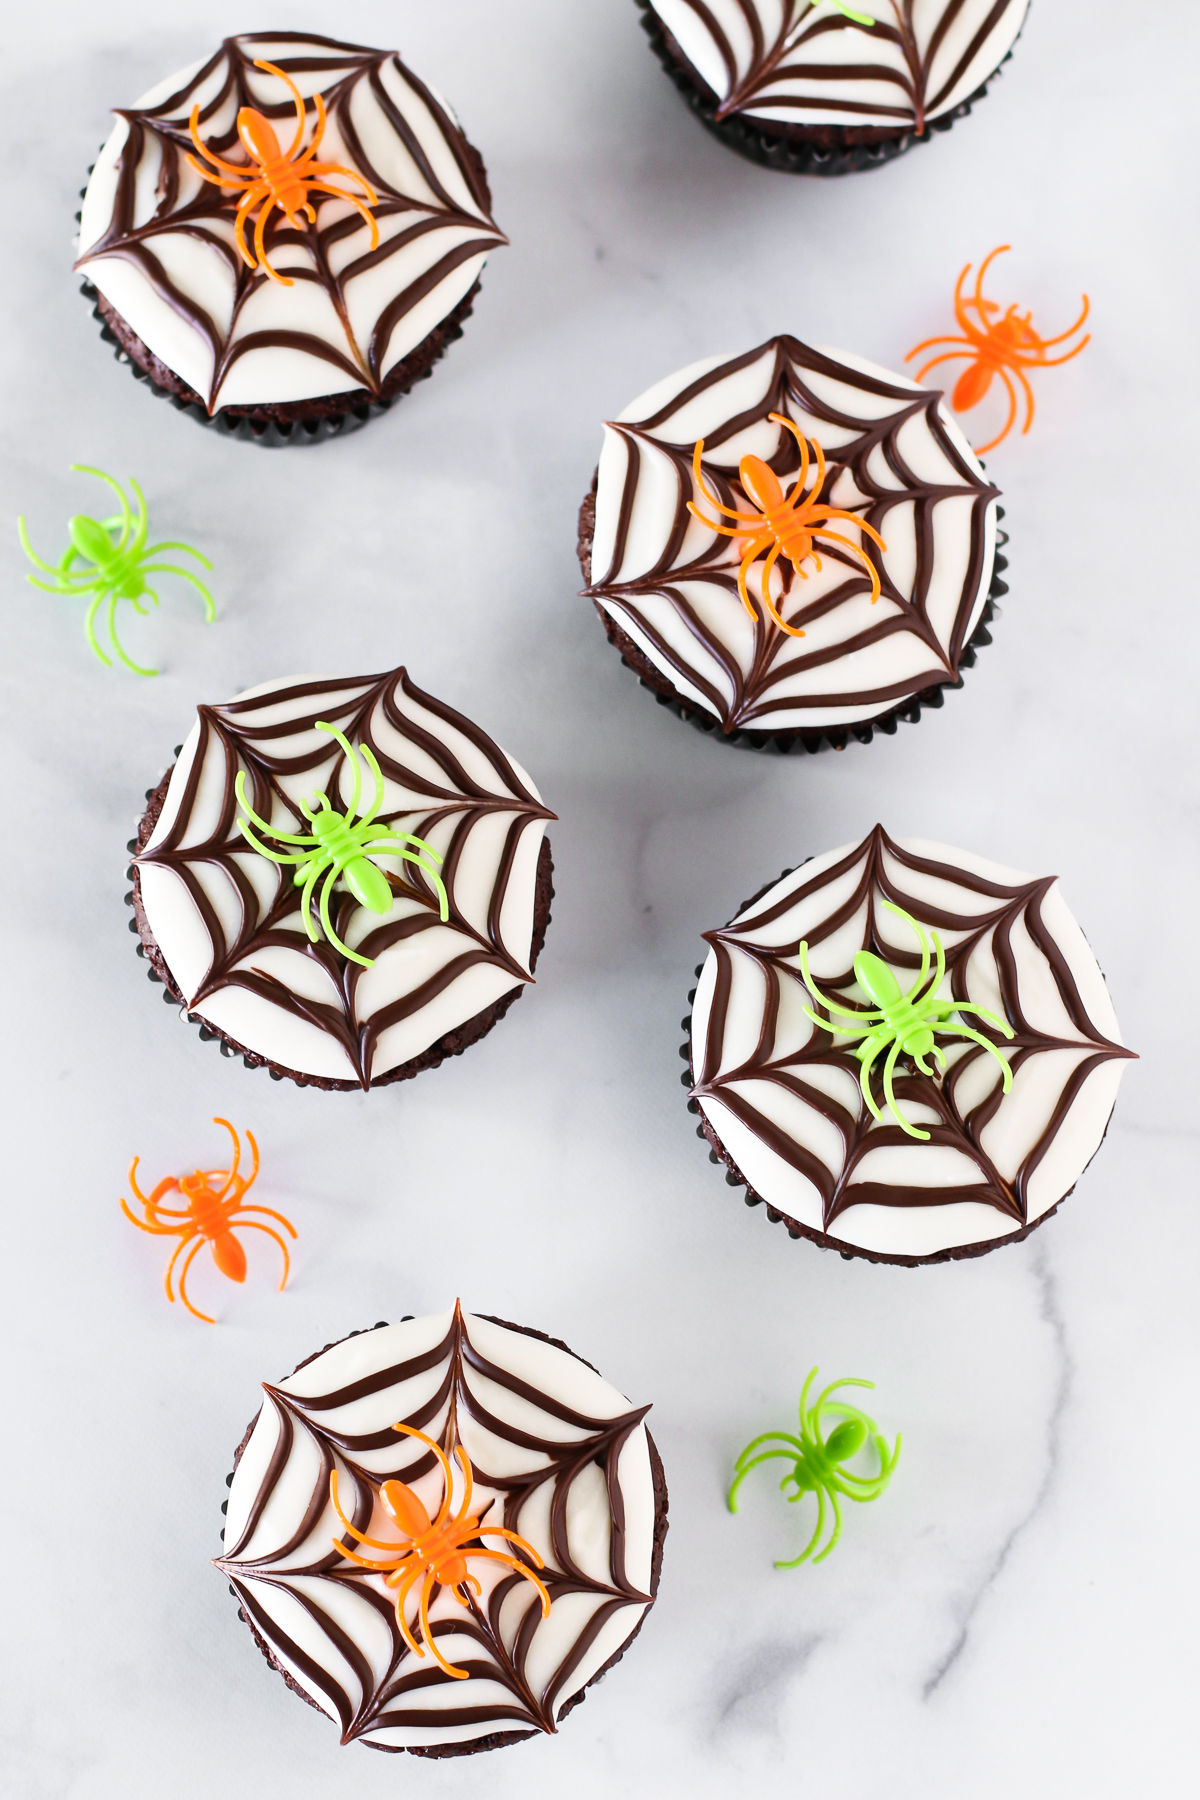 Gluten Free Vegan Chocolate Spiderweb Cookies. These easy-peasy, creepy spiderweb cupcakes are sure to be a hit at your Halloween party this year!